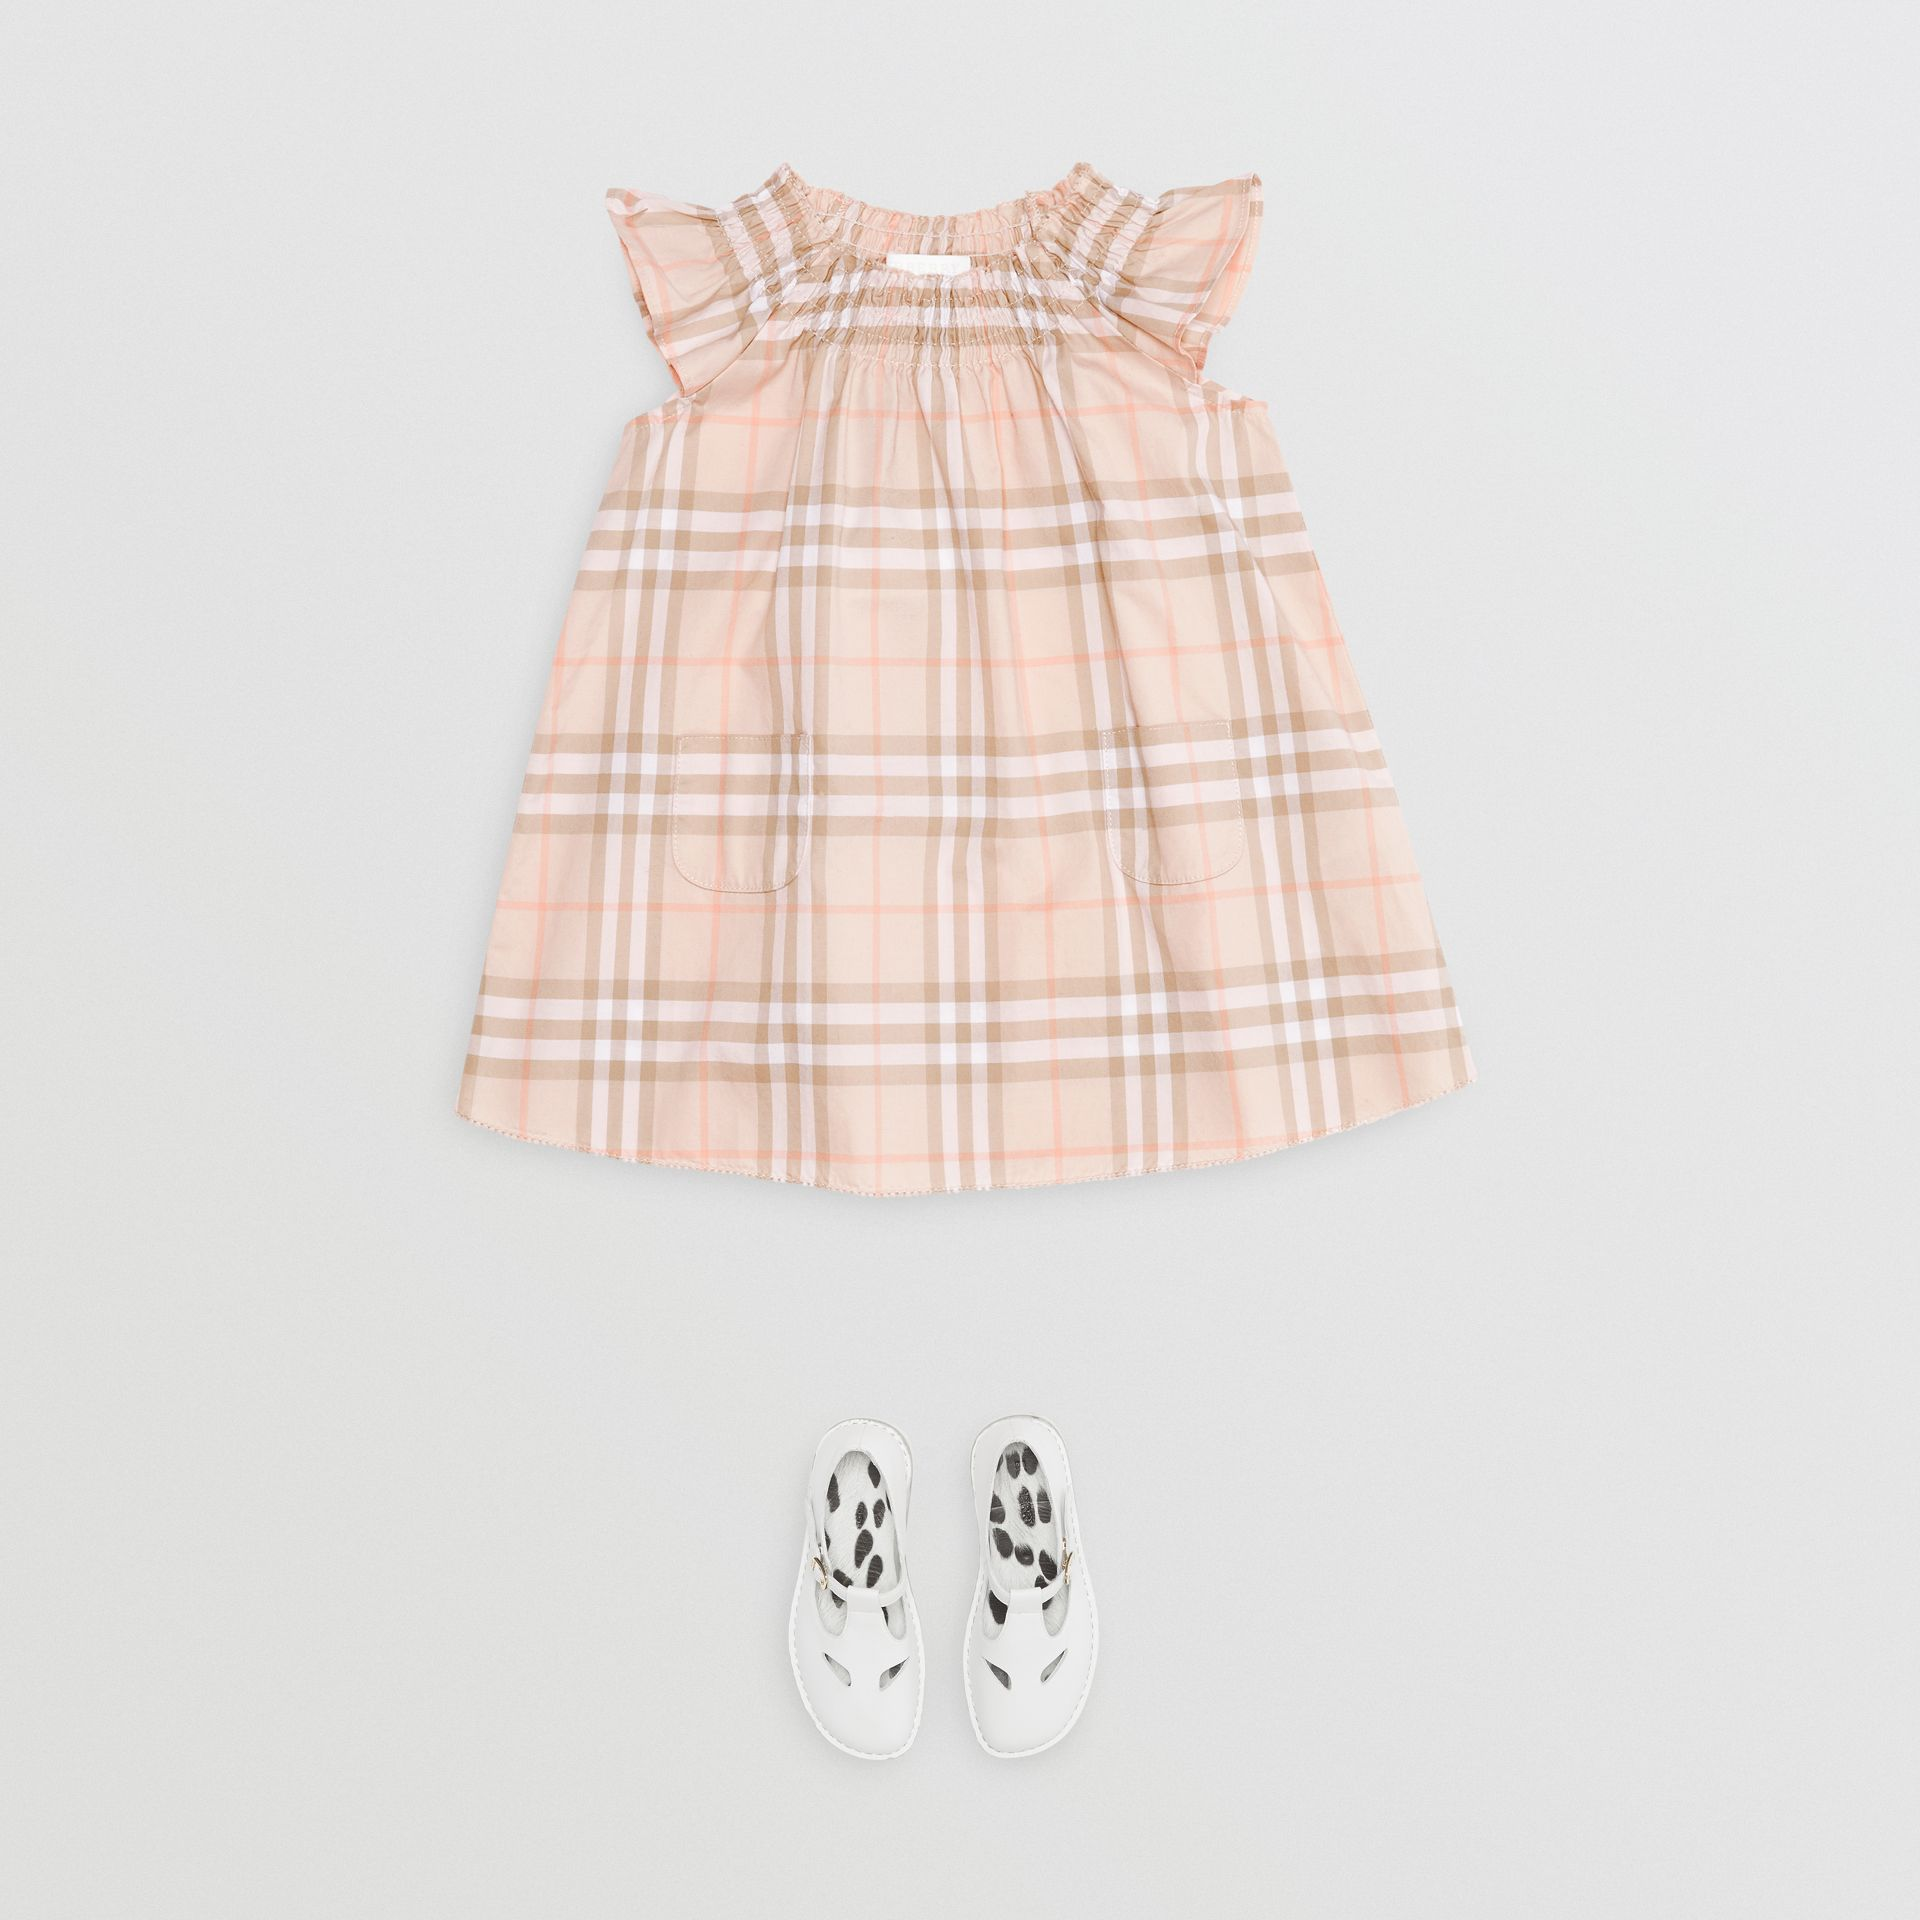 Smocked Vintage Check Cotton Dress in Pale Pink Apricot - Children | Burberry United Kingdom - gallery image 2